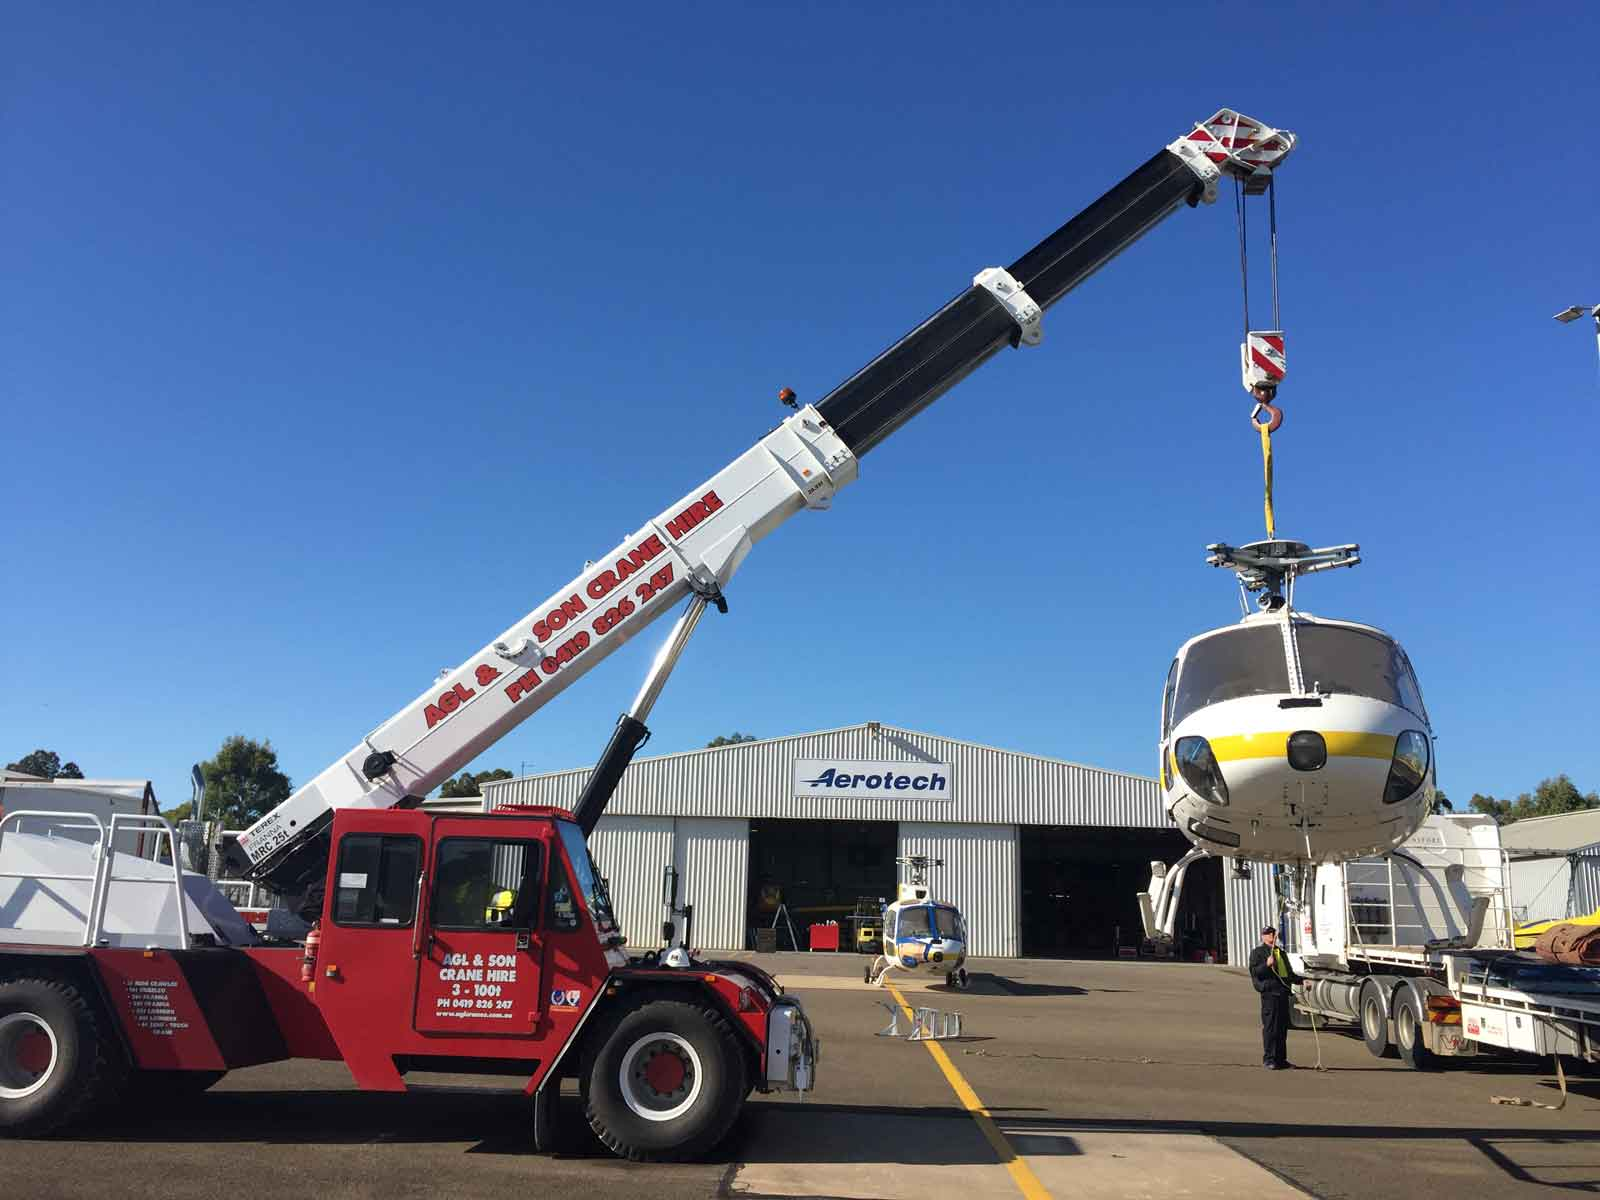 red crane lifting a helicopter